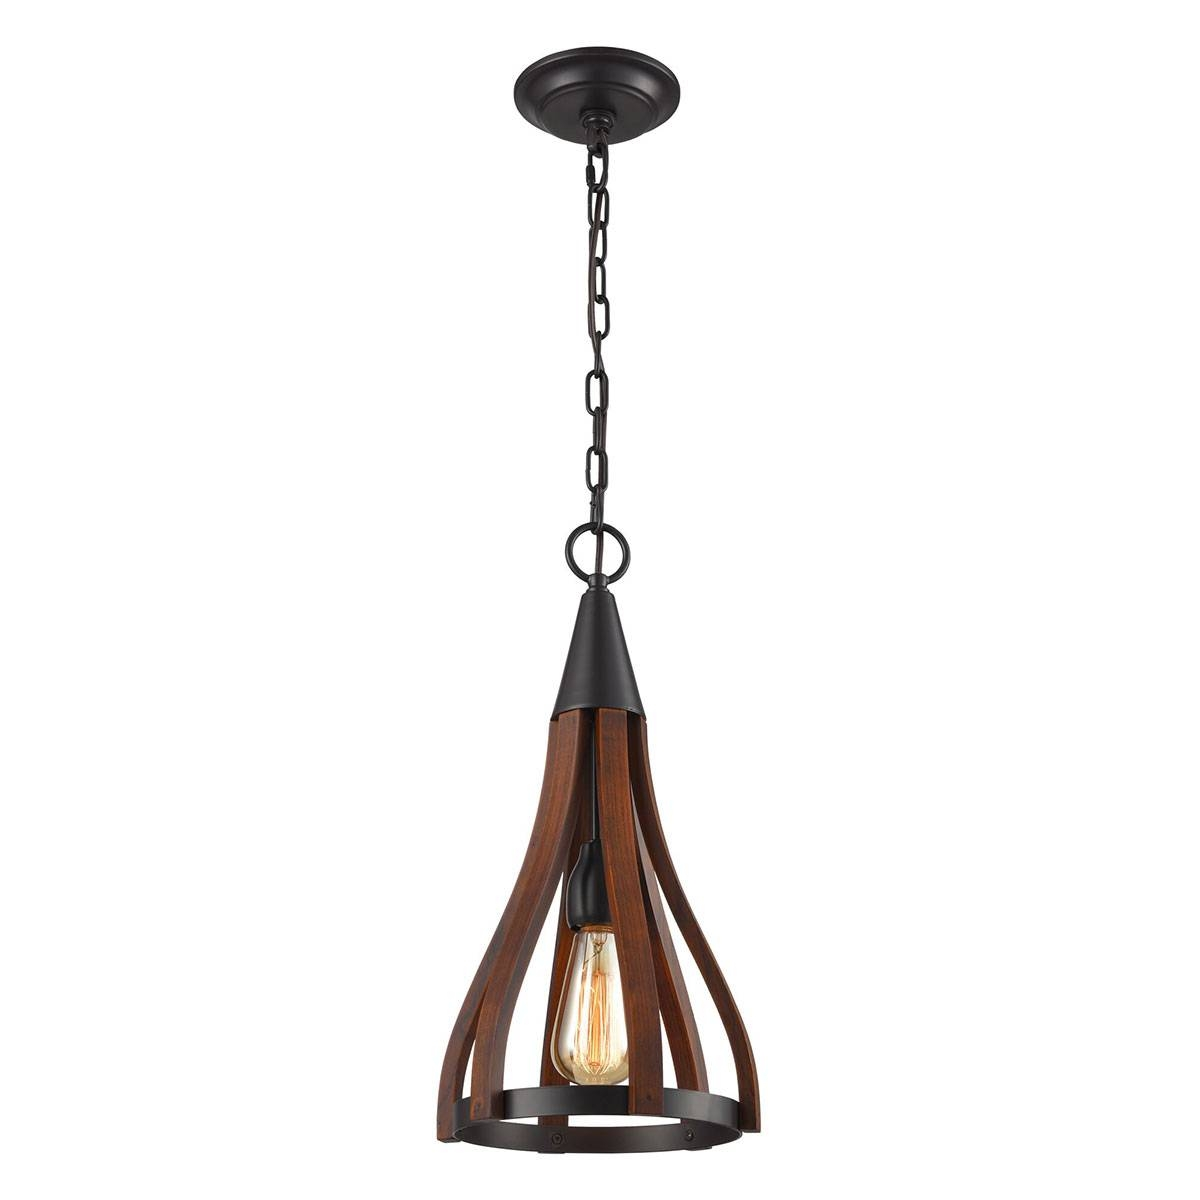 Shop Timber Pendant Lights | Modern Pendant Lights | Online Lighting In Timber Pendant Lights (View 9 of 15)